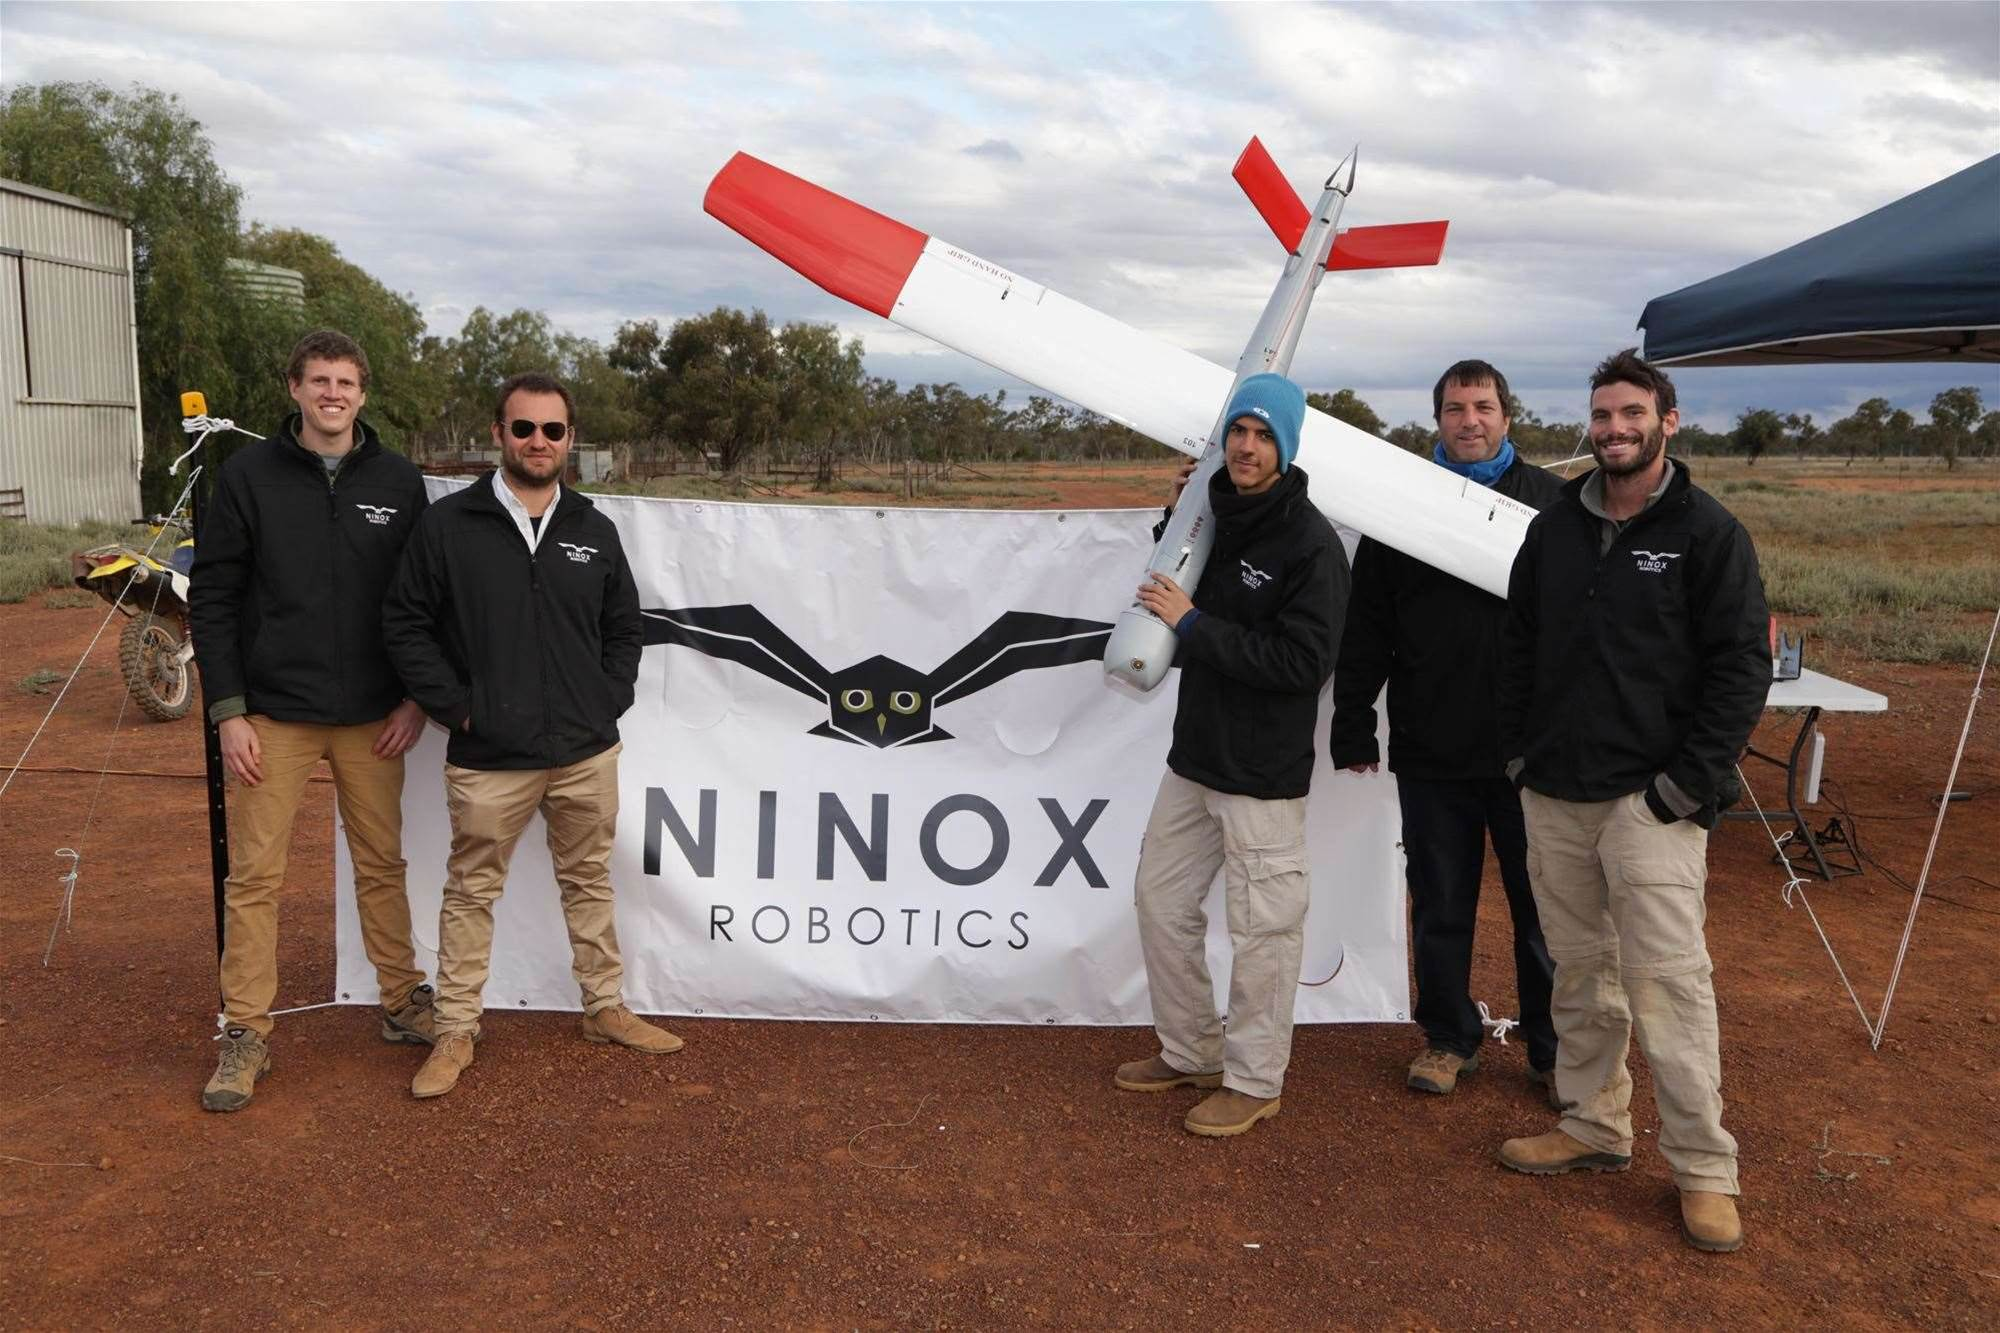 Ninox Robotics About to Launch Military-grade Drone for Agricultural Surveillance